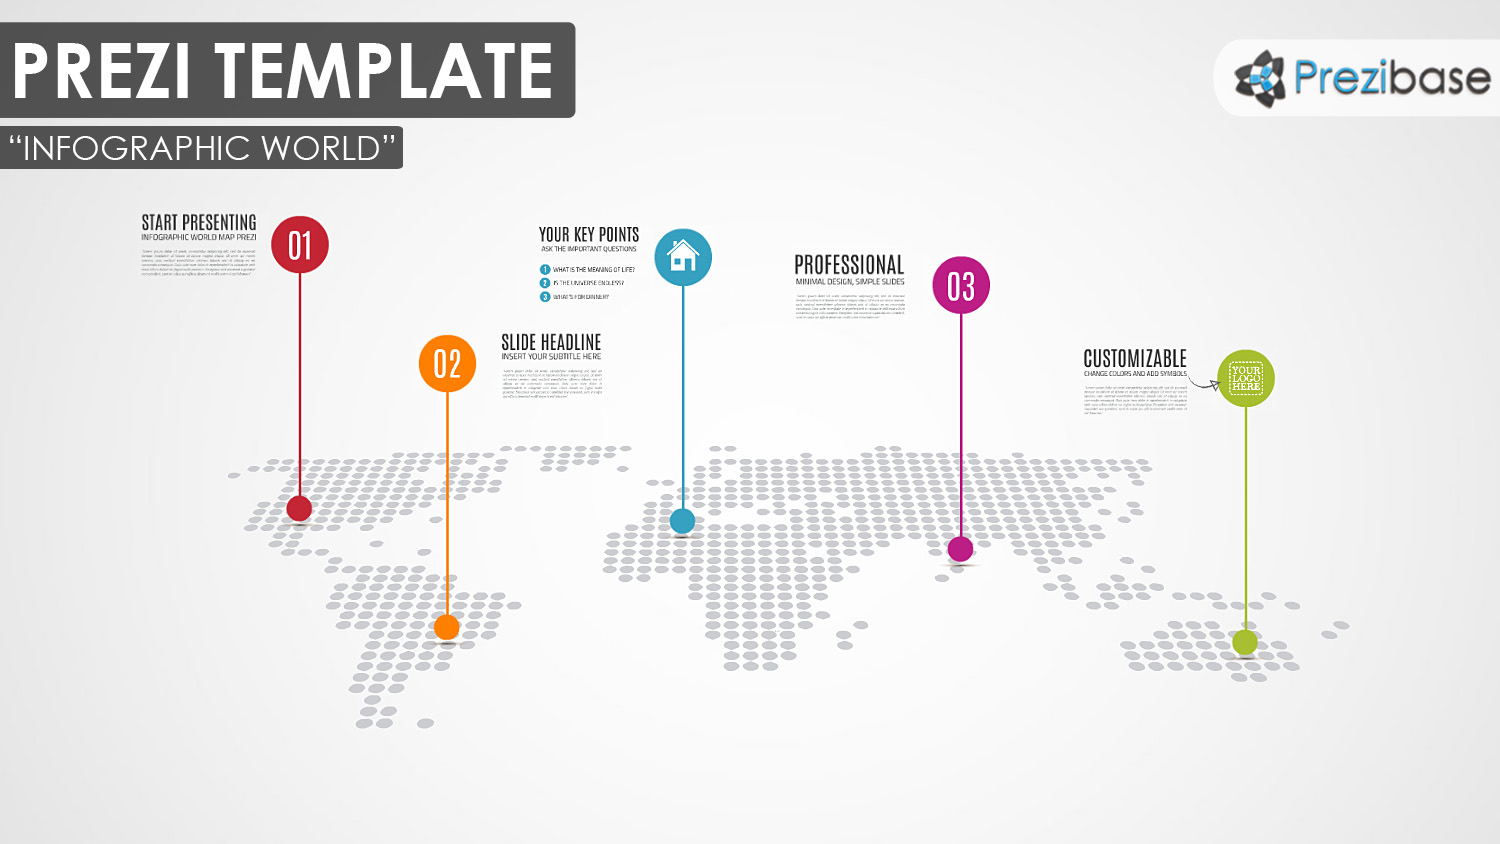 World map prezi templates prezibase customizable tablet computer layout zoom prezi template for presentations gumiabroncs Gallery